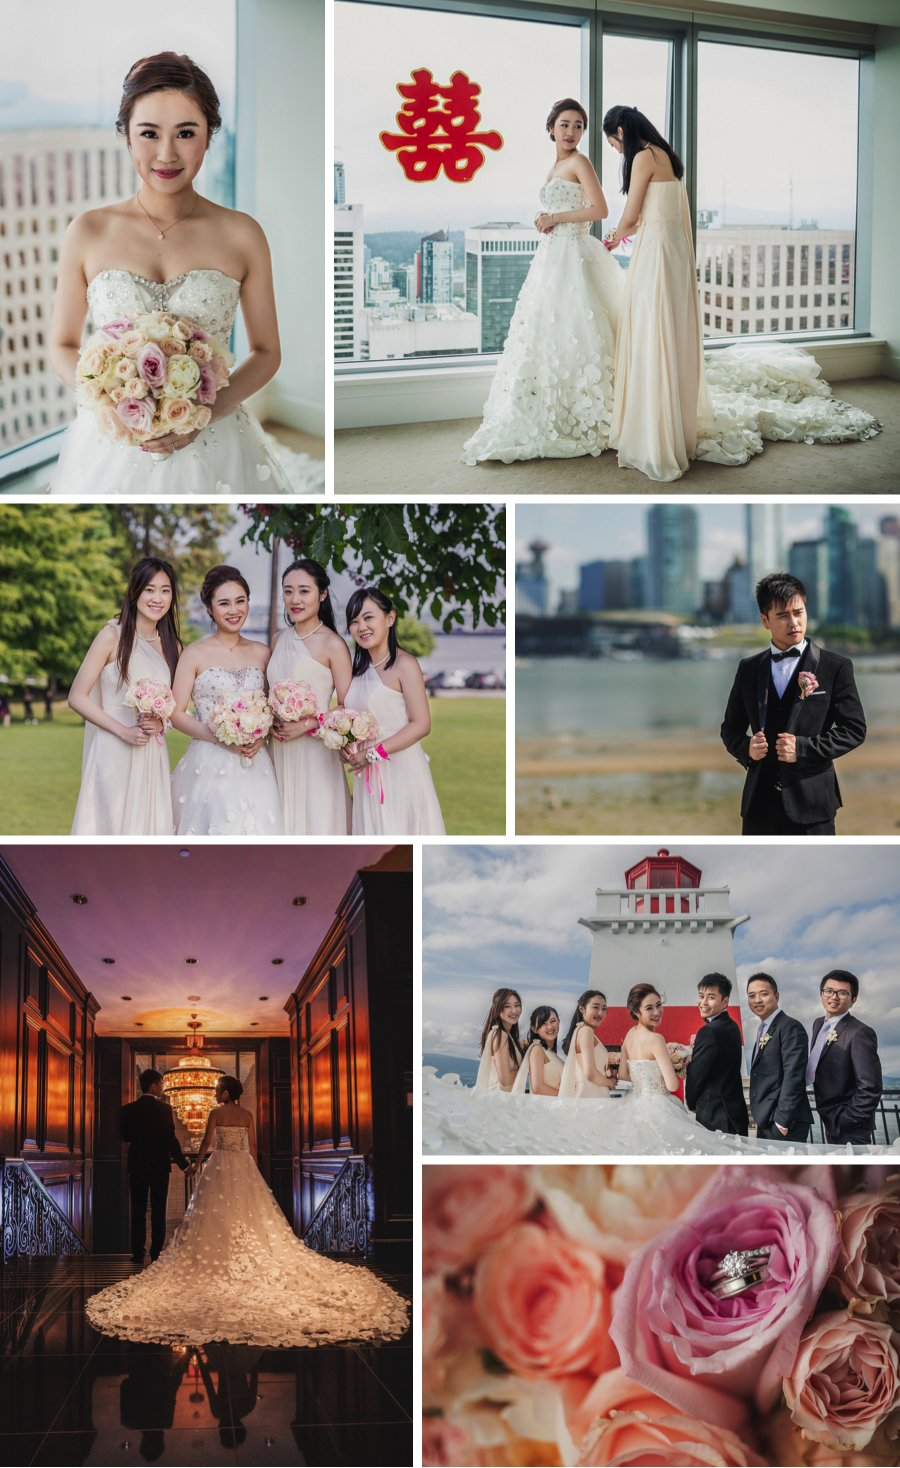 A Splash of Red in Vancouver - a real wedding